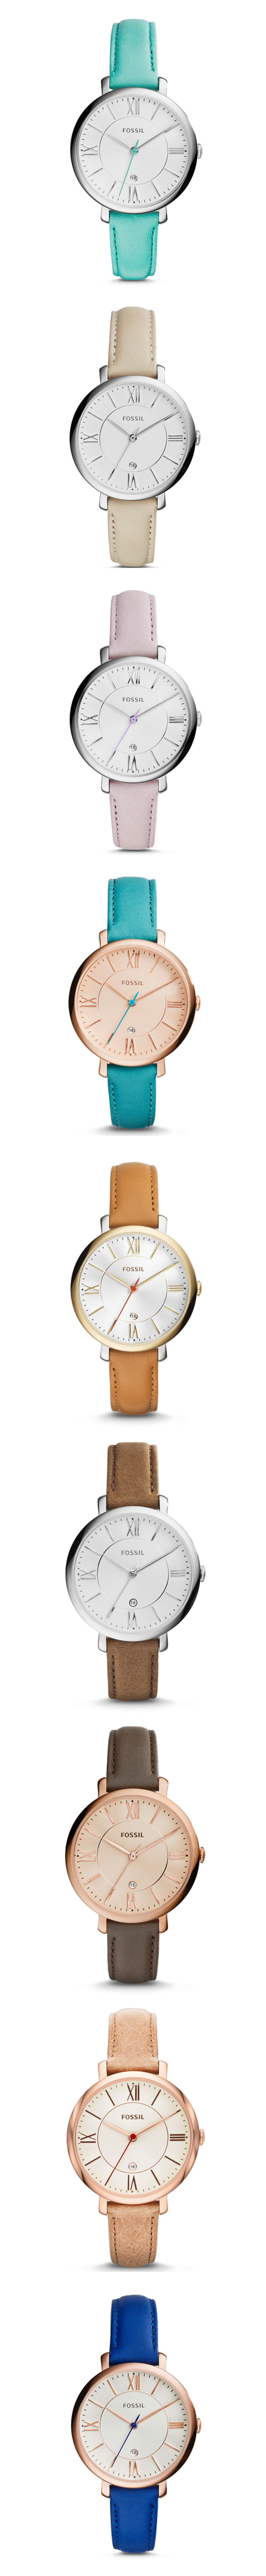 rsp cream sand at three s main buyfossil hand fossil online leather women strap pdp watch jacqueline watches